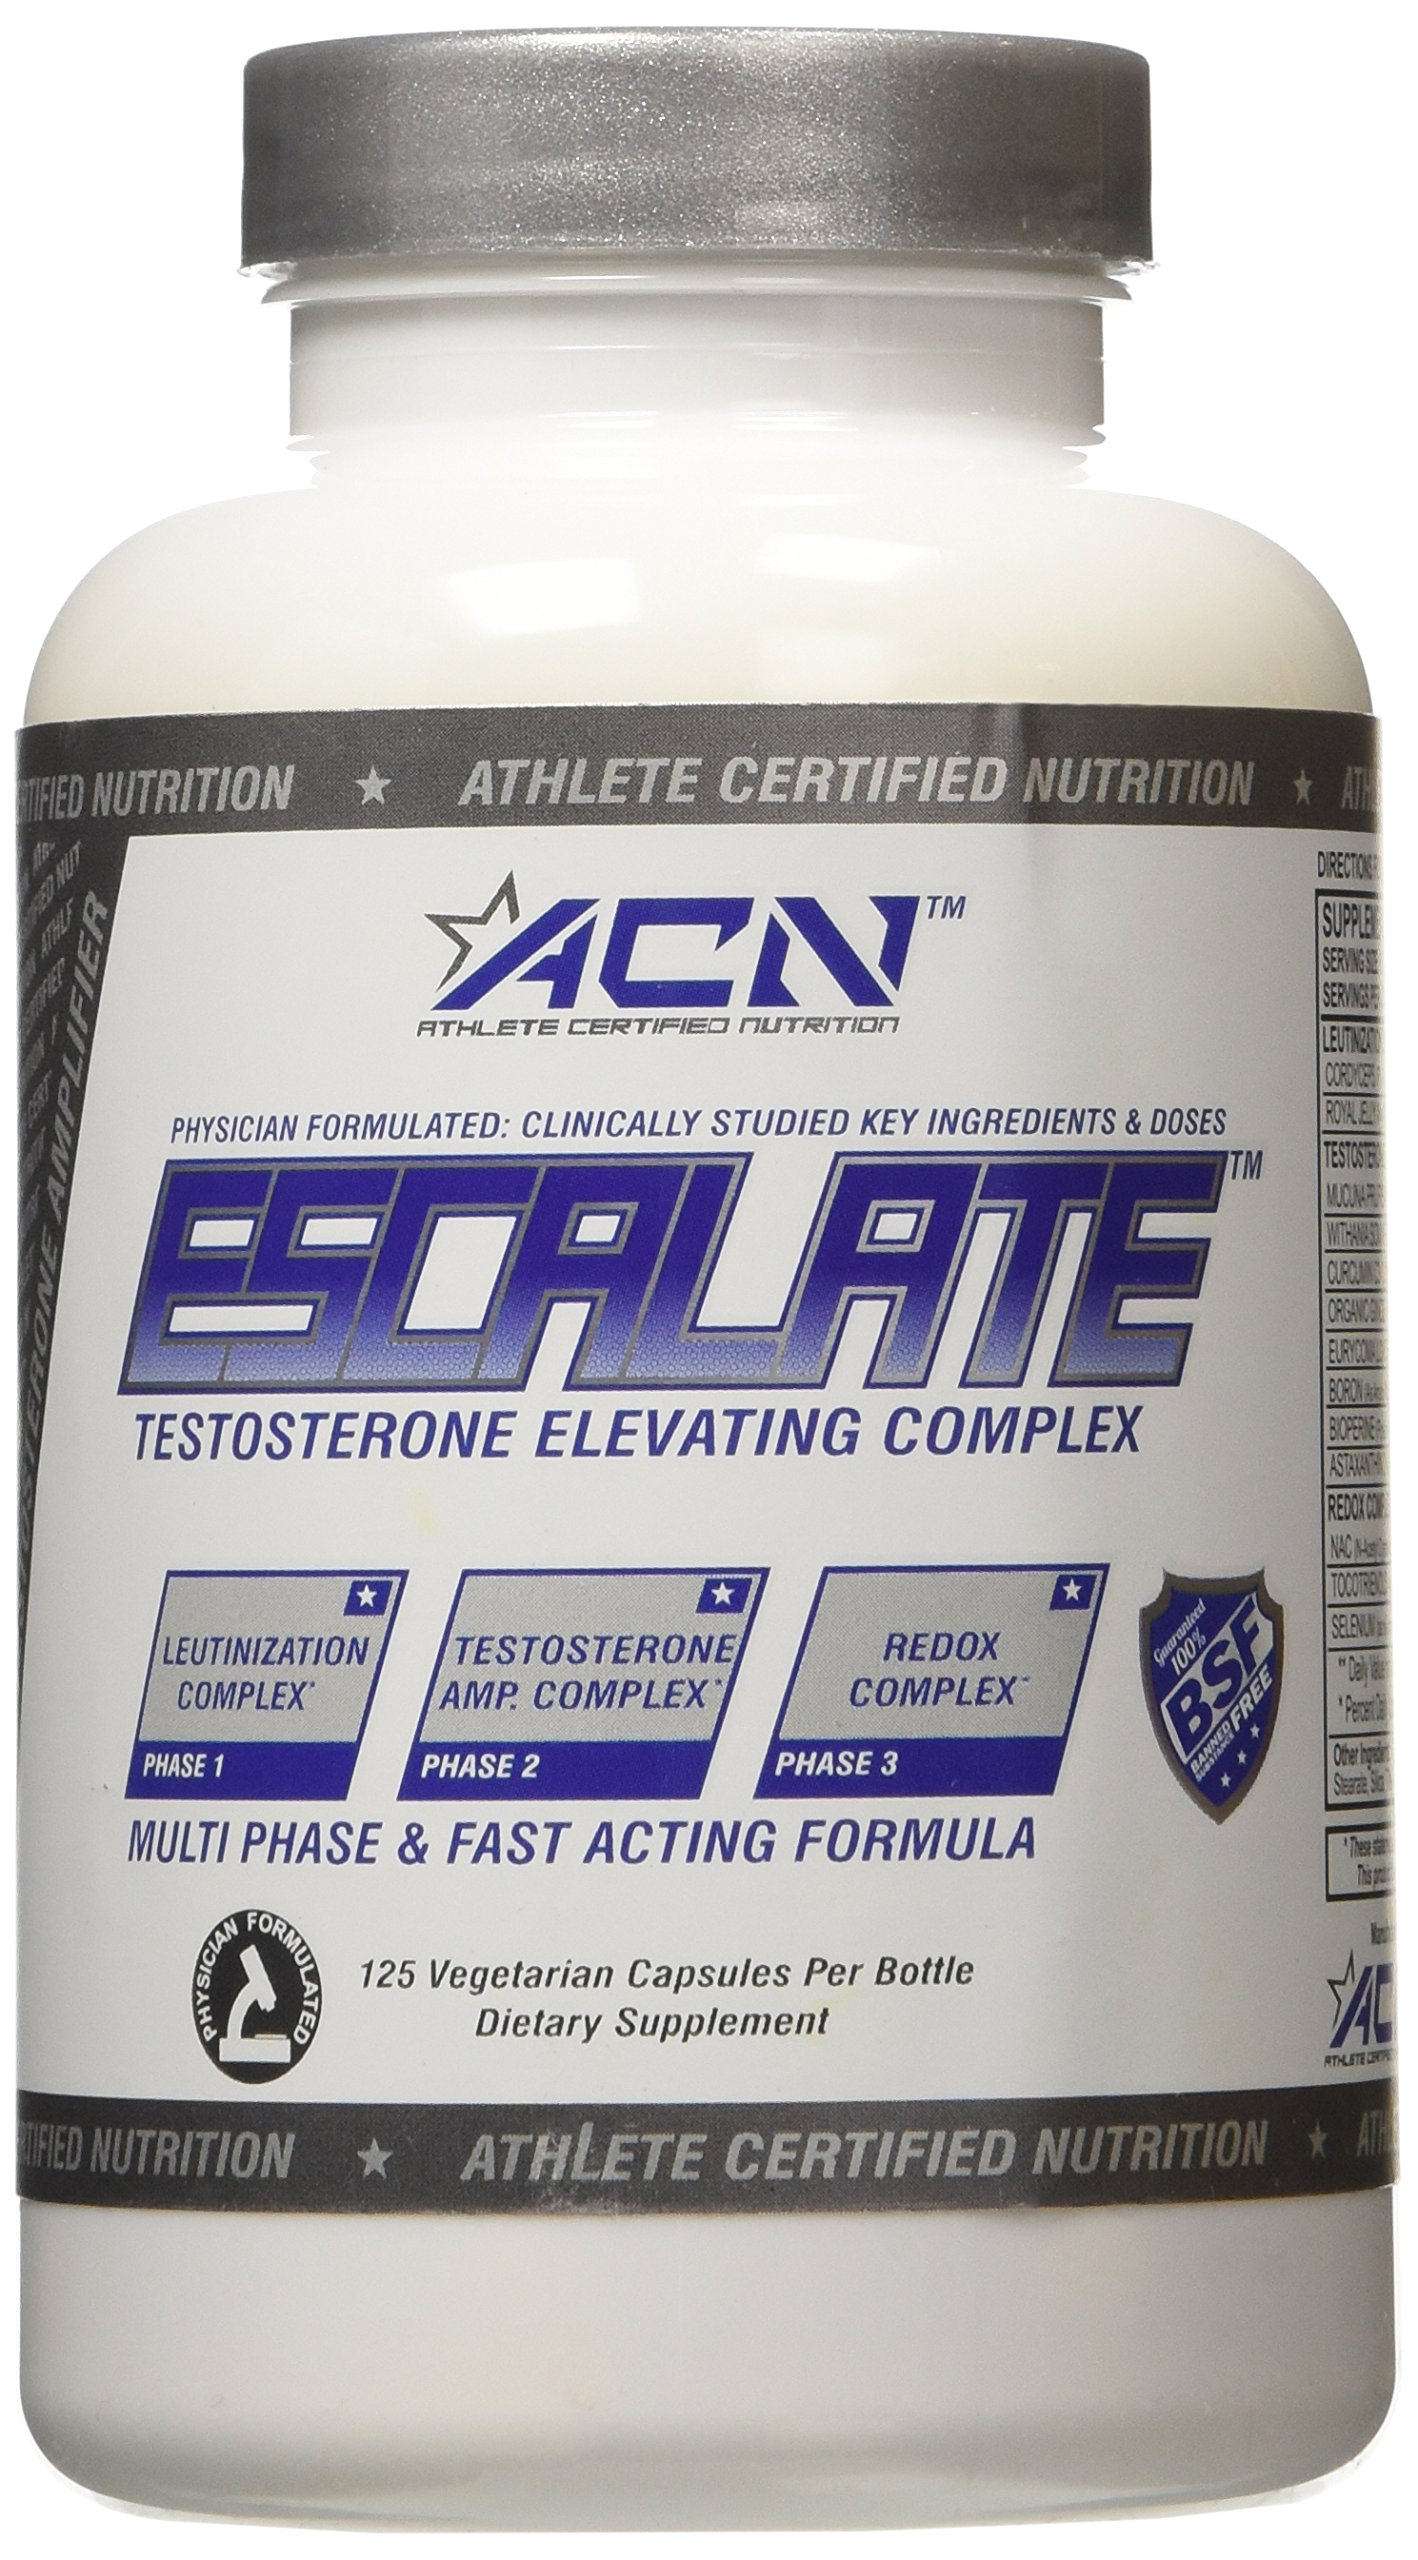 Athlete Certified Nutrition Escalate Free Testosterone Elevating Complex Supplement, 125 Count